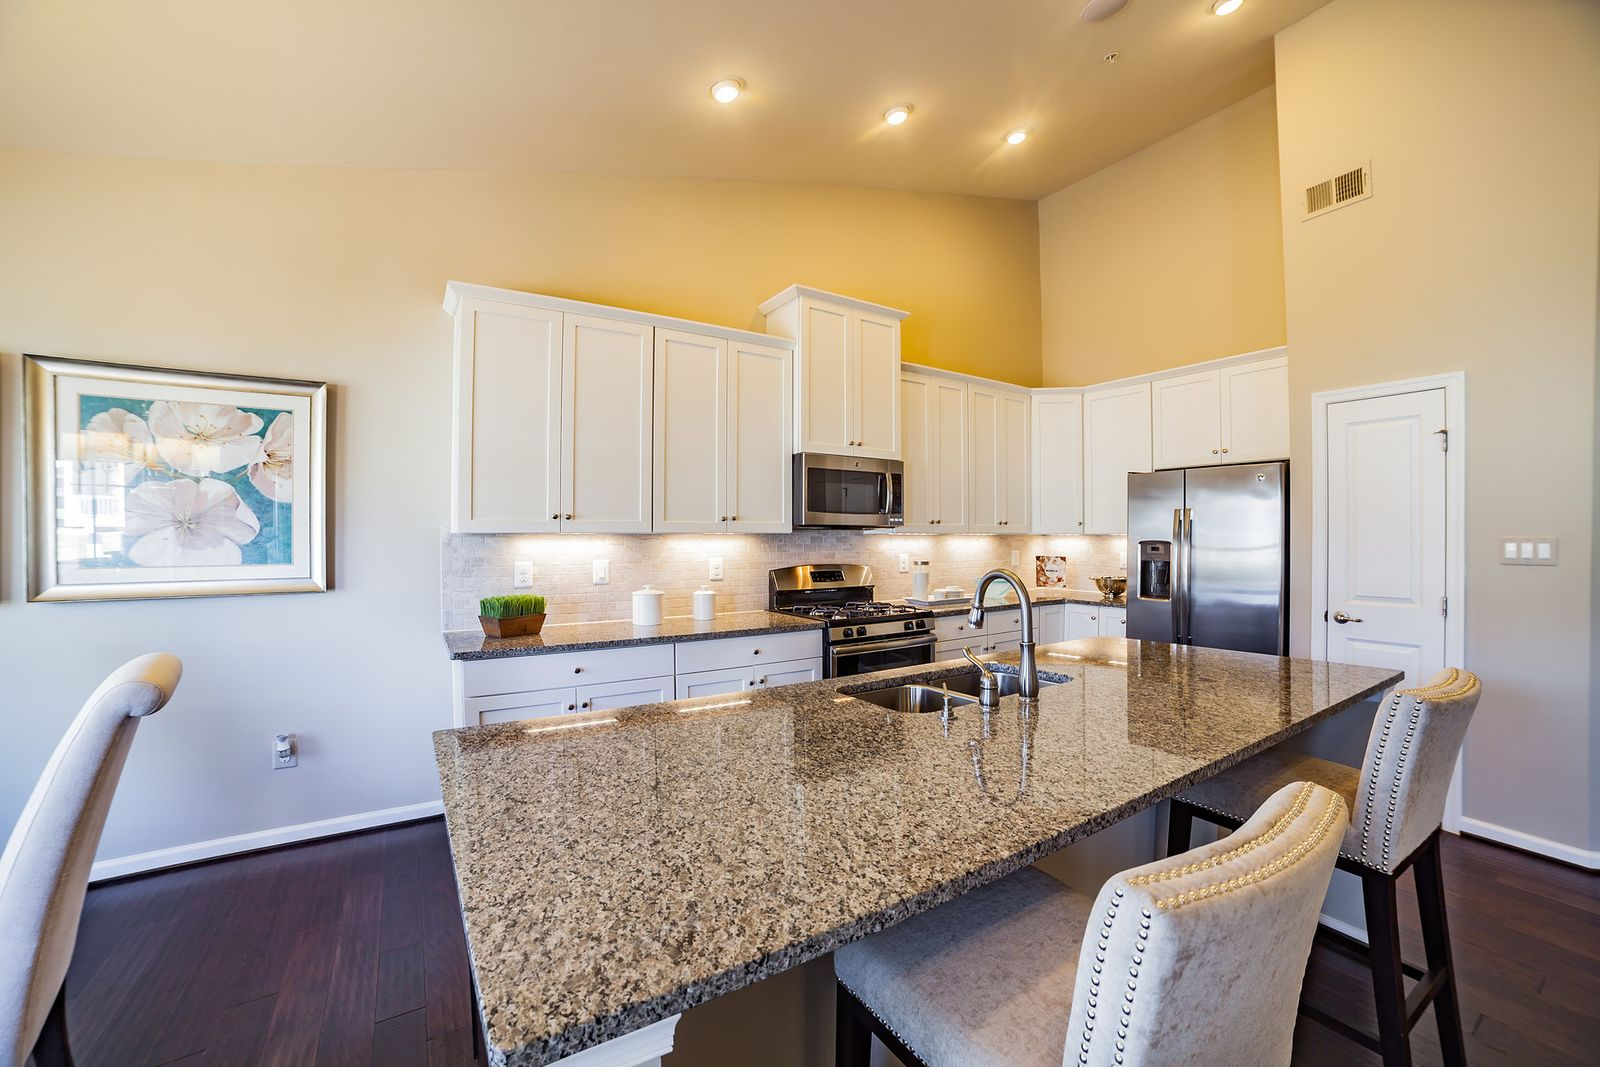 Kitchen featured in the Pisa Torre By Ryan Homes in Ocean City, MD